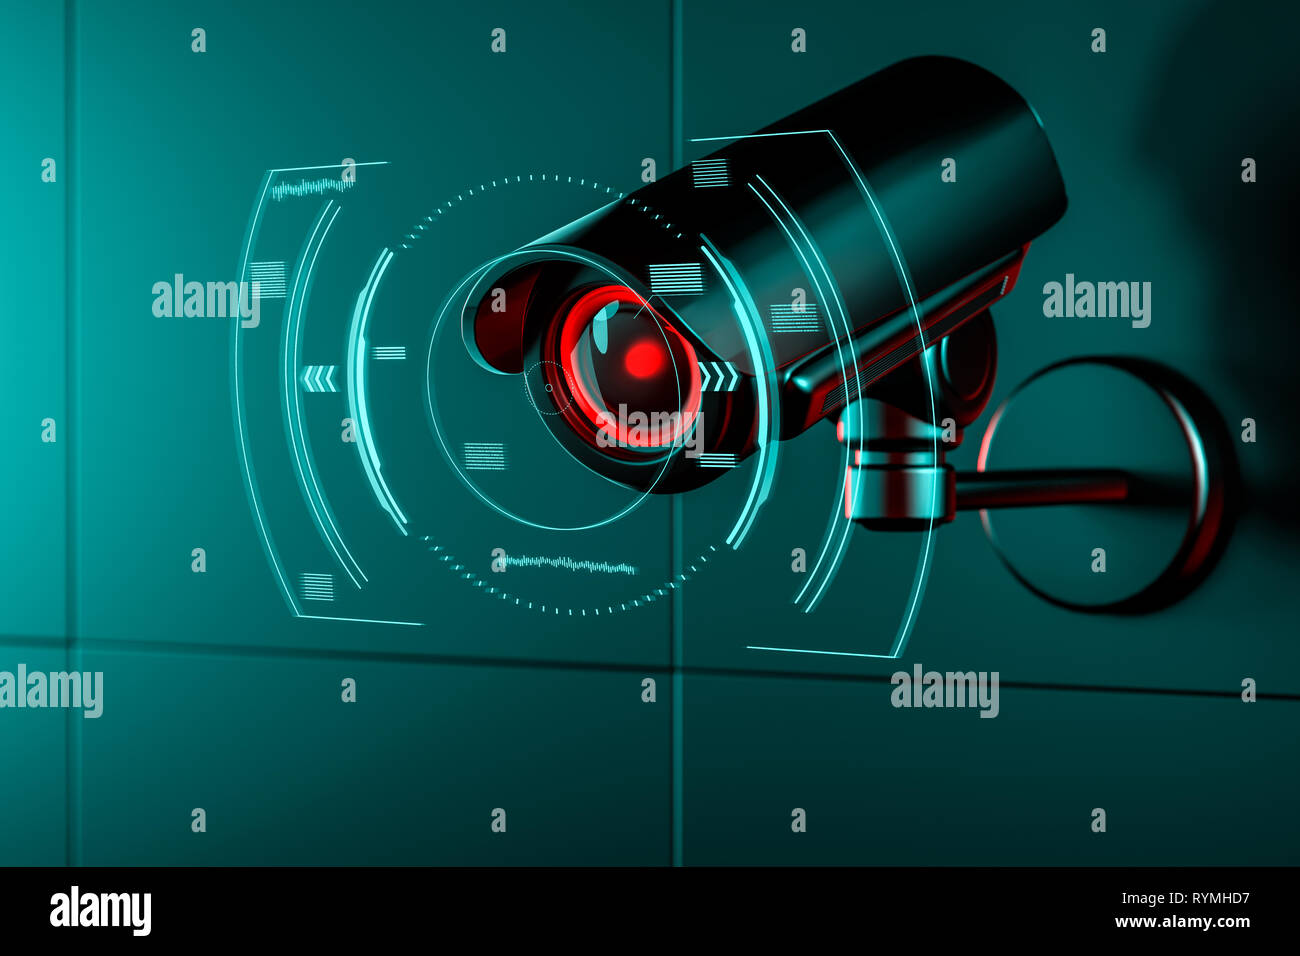 Surveillance camera on wall with some kind of futuristic interface or HUD concept around its lens as it gathers data. 3D rendering - Stock Image